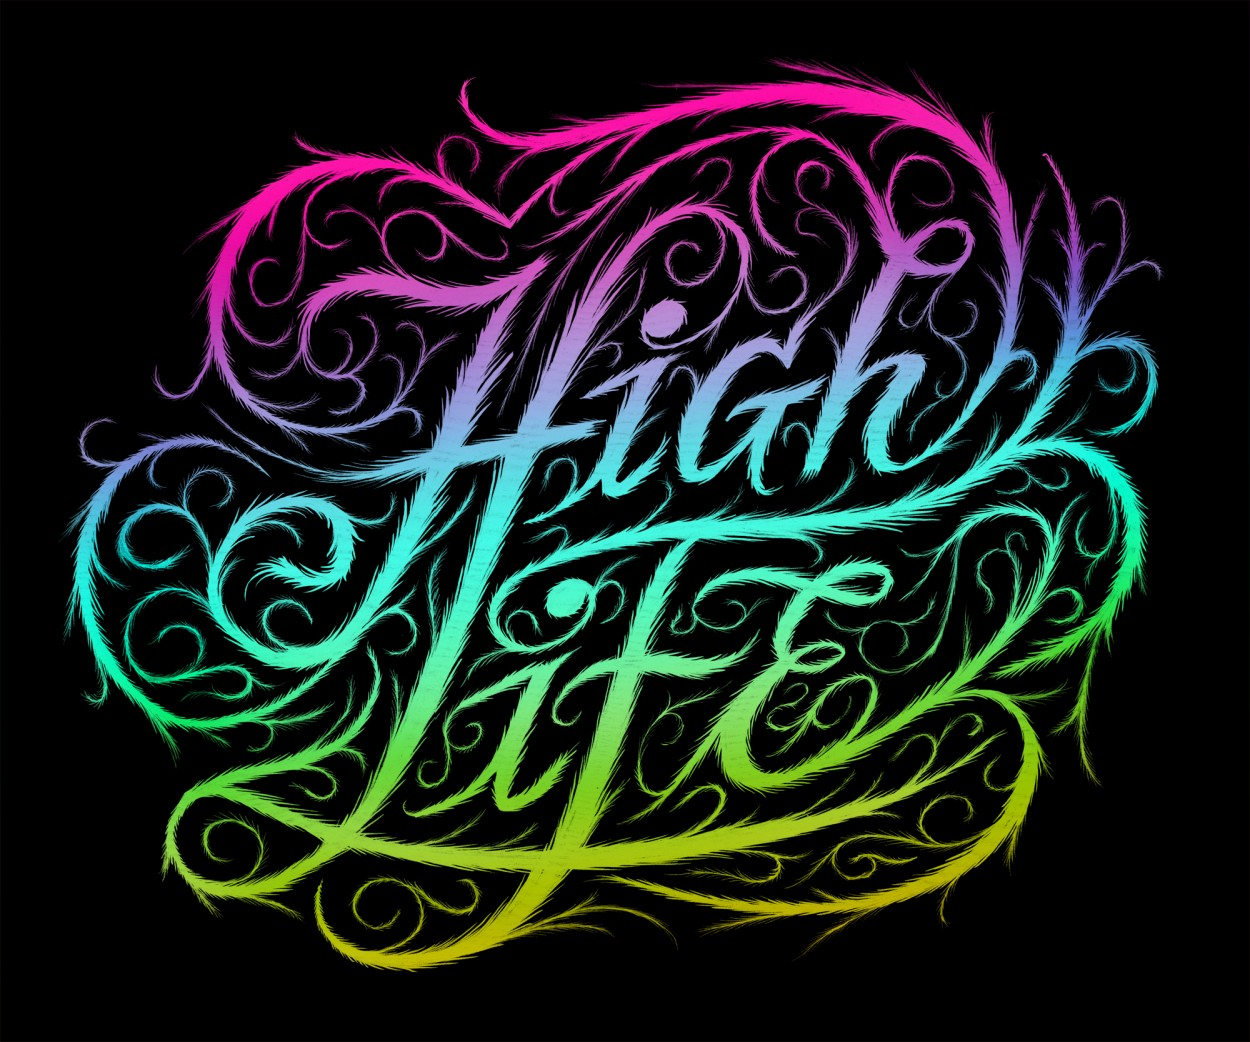 highlife1 Breakout Lettering Crafted by Erik Marinovich